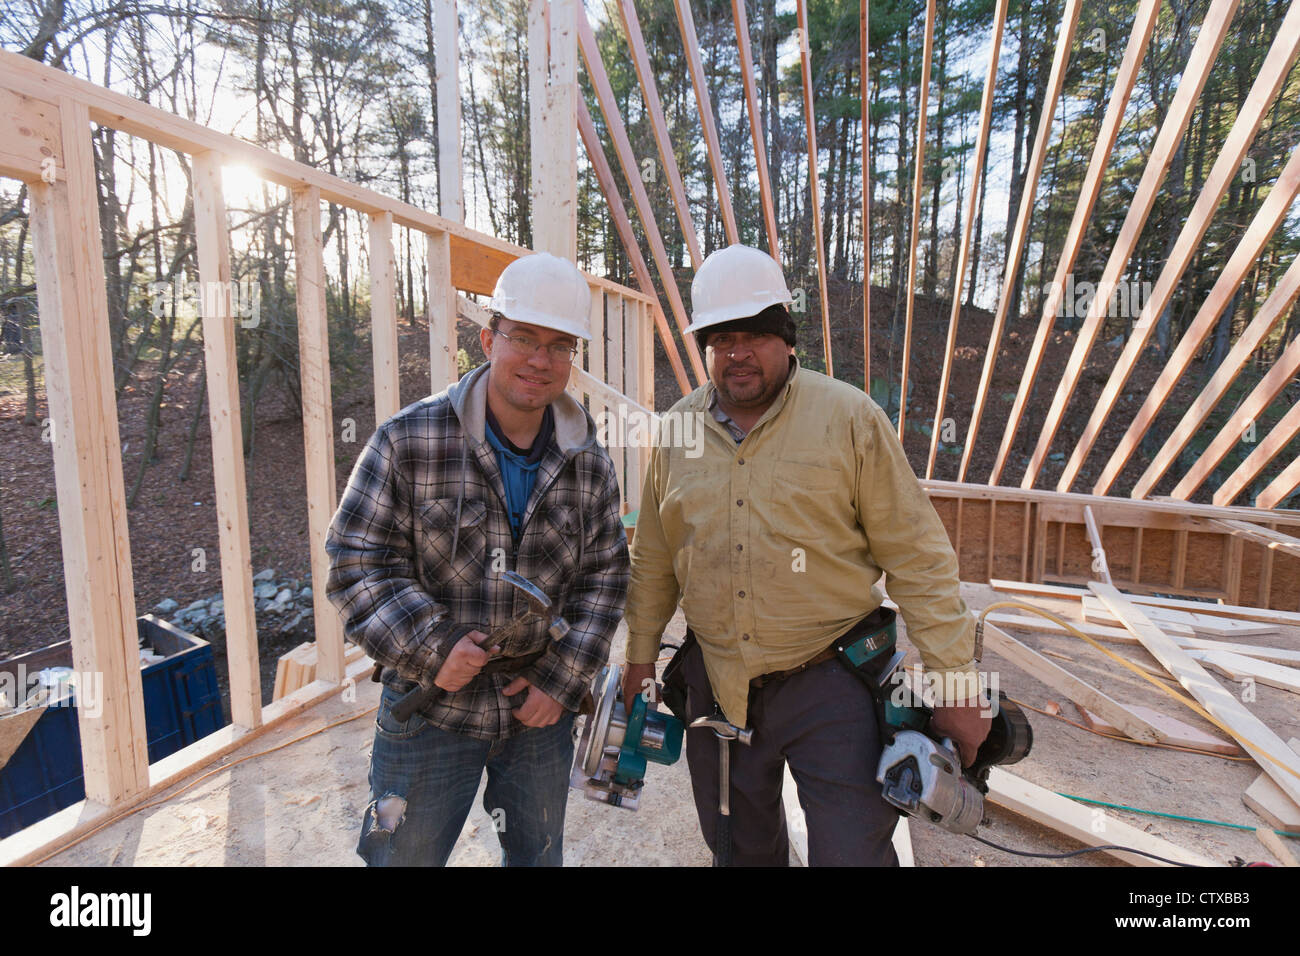 Two Men Power Tools Stock Photos & Two Men Power Tools Stock Images ...